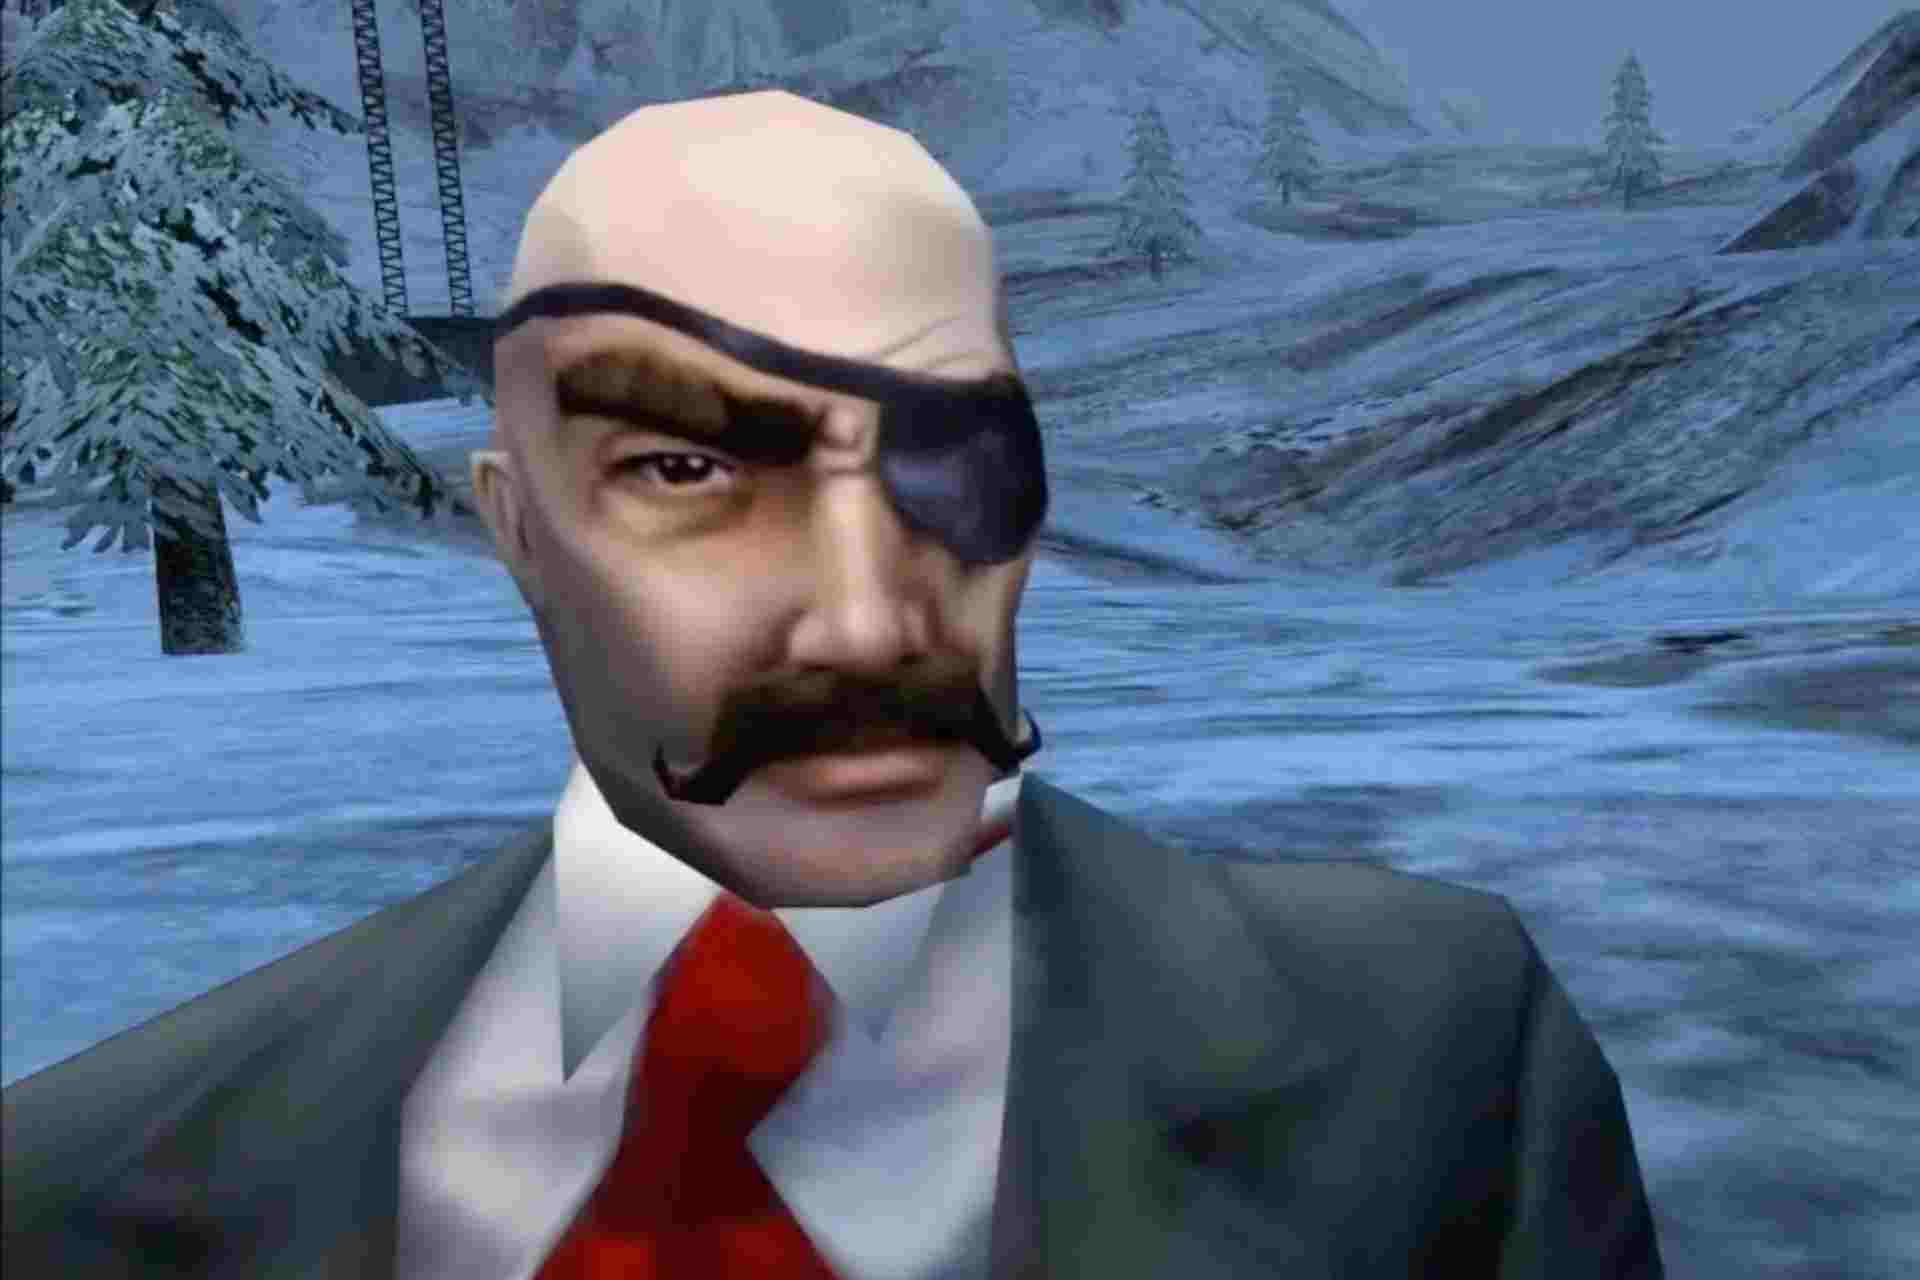 Dimitrij Volkov is a main villain in No one lives forever game.